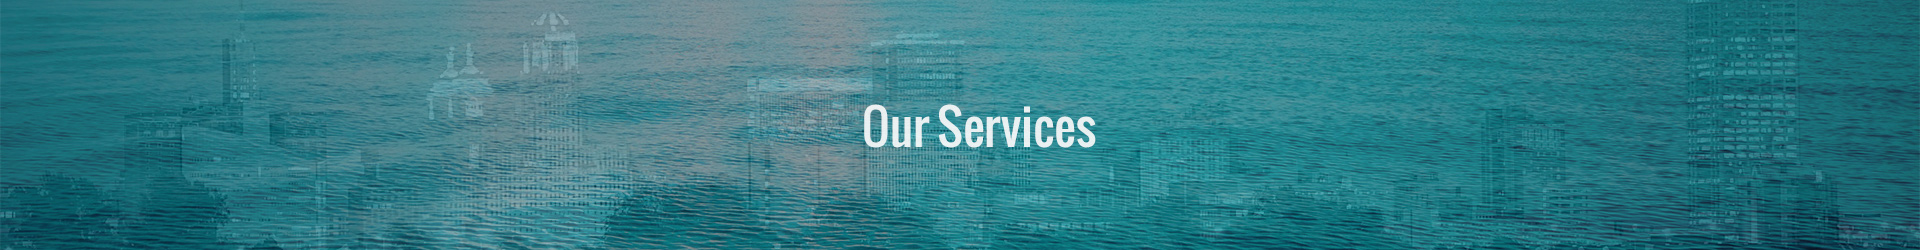 Our Services Banner10